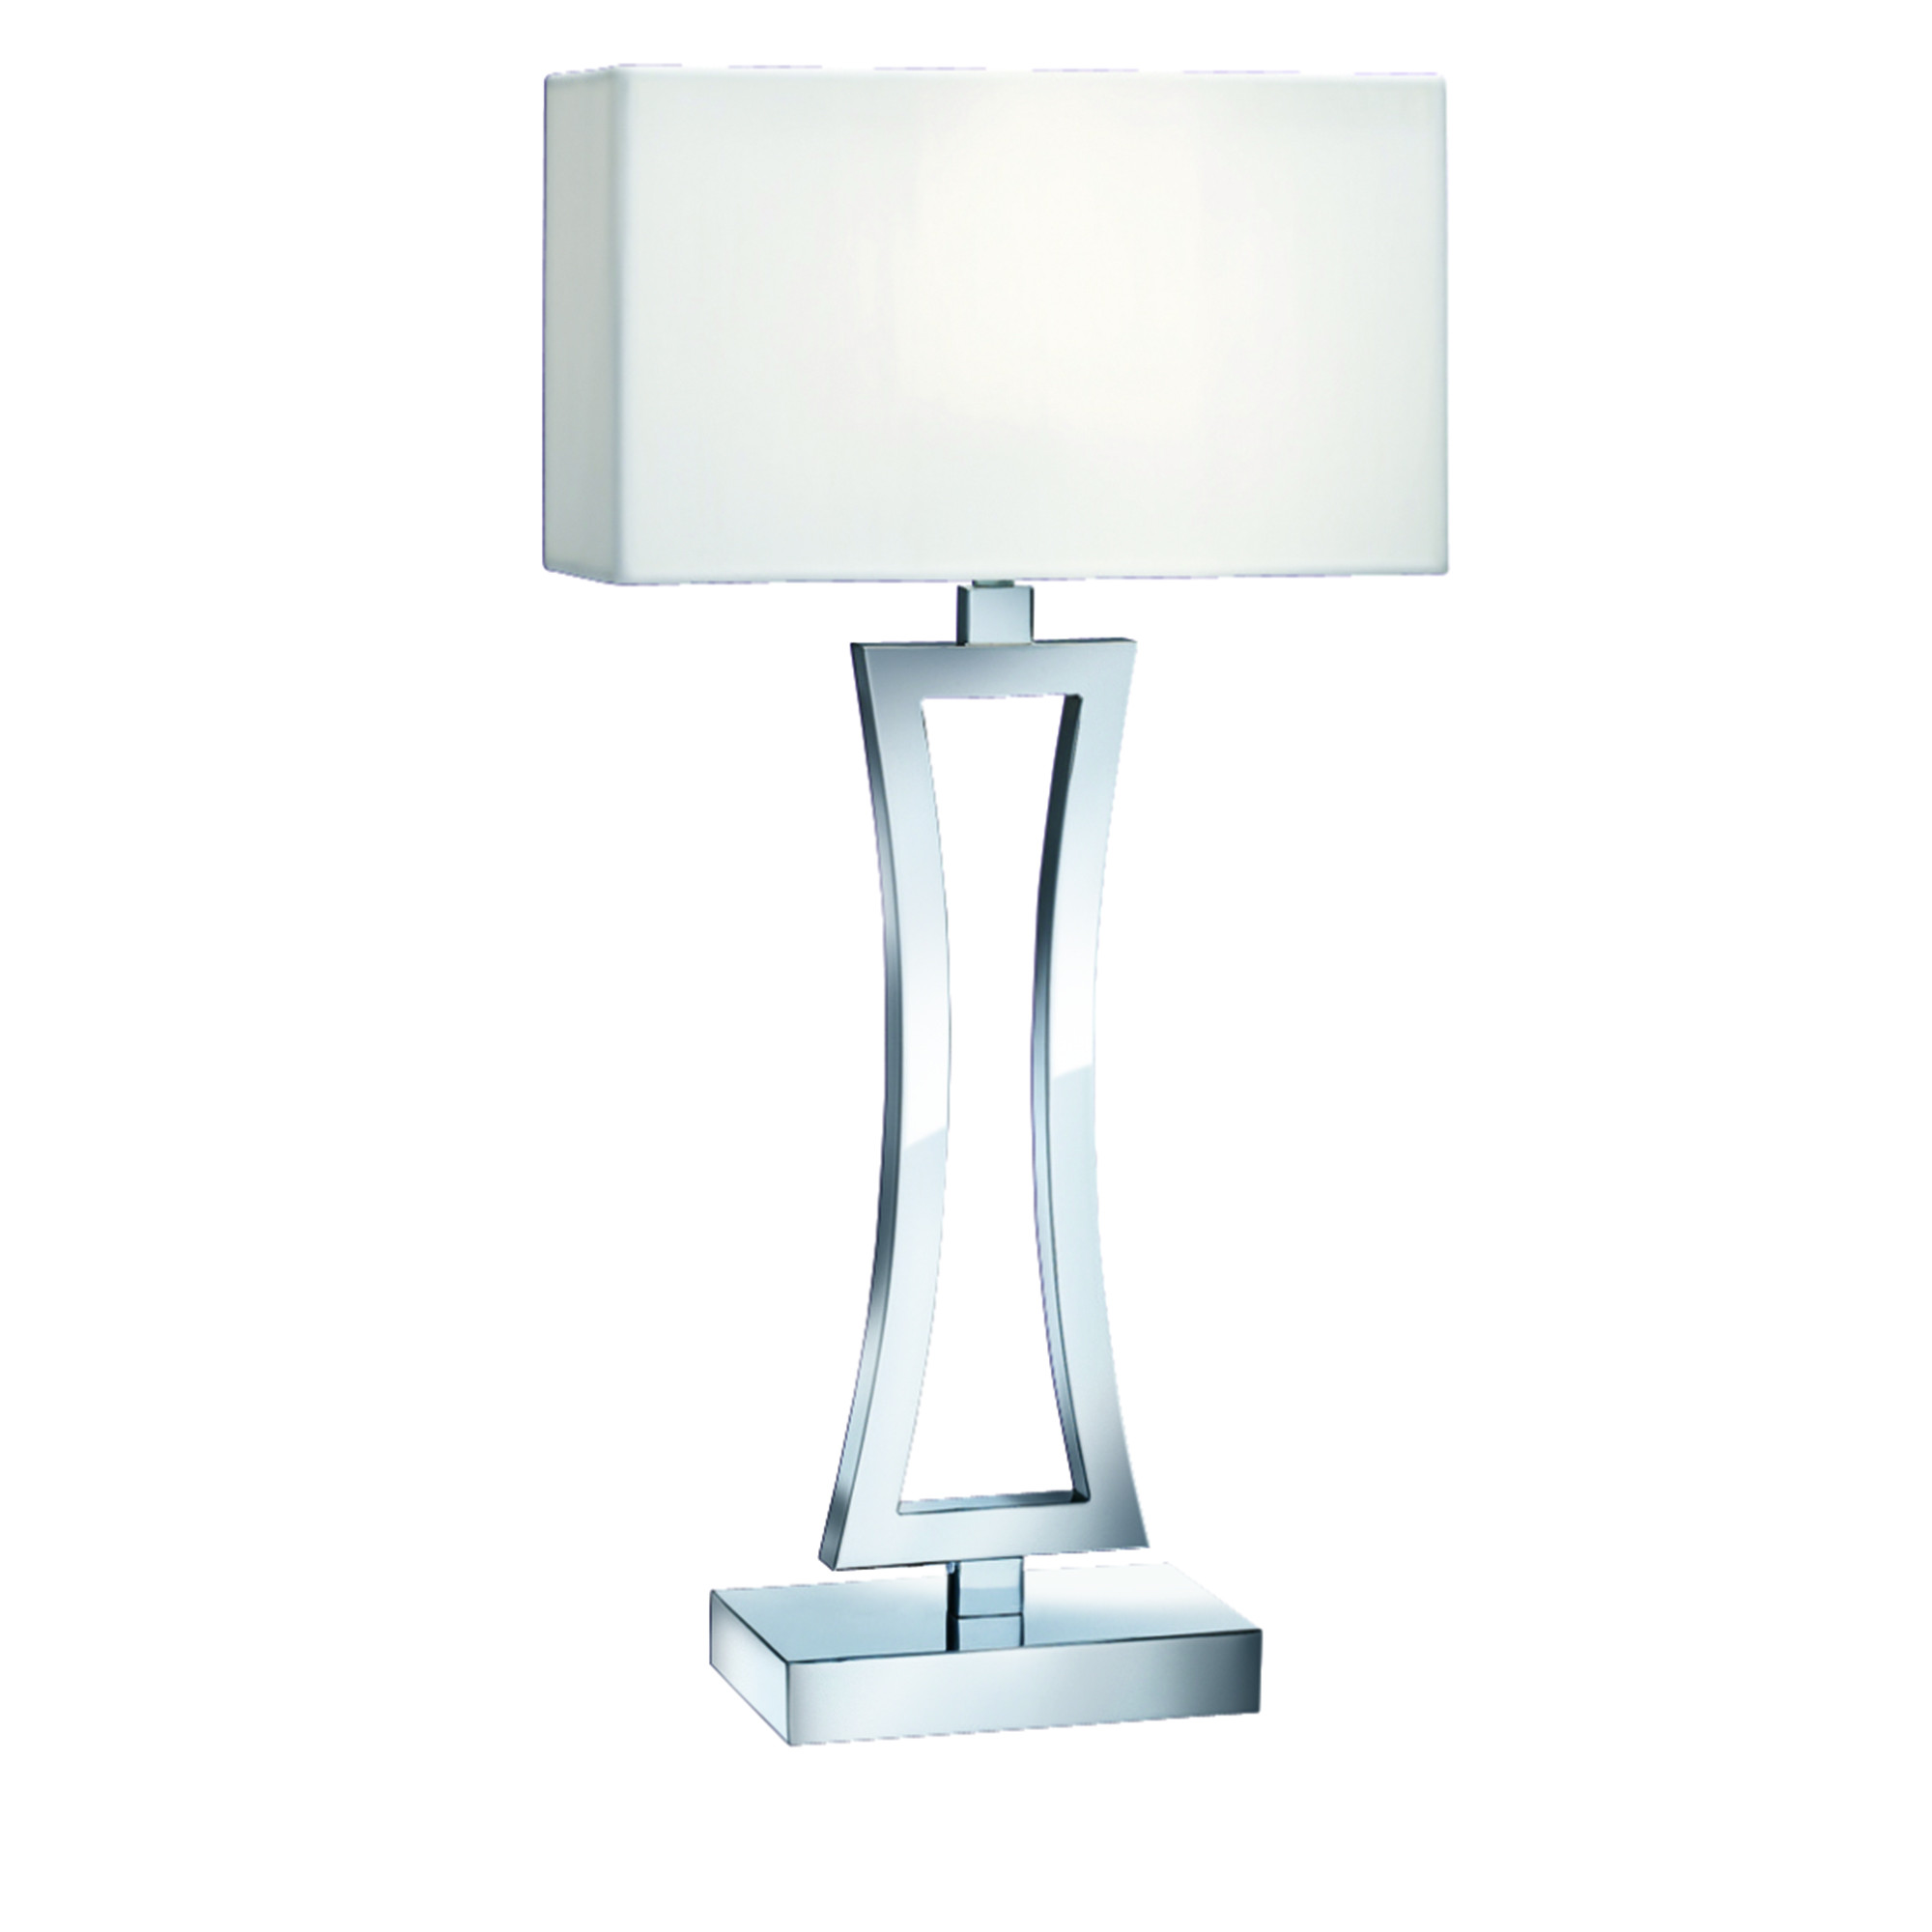 Satin Silver Curved Rectangular Table Lamp With White Oblong Shade